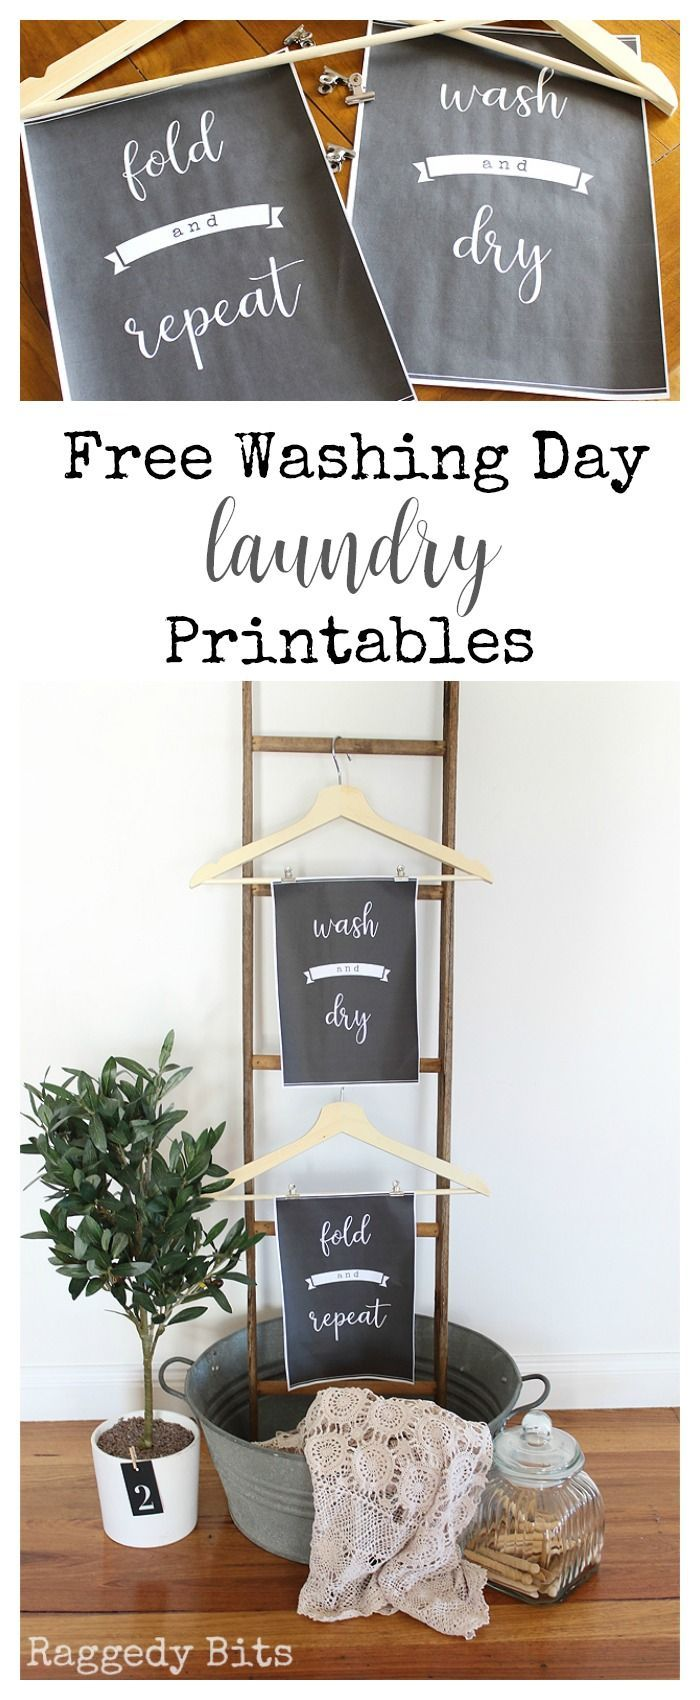 Free Washing Day Laundry Printables Laundry Room Printables